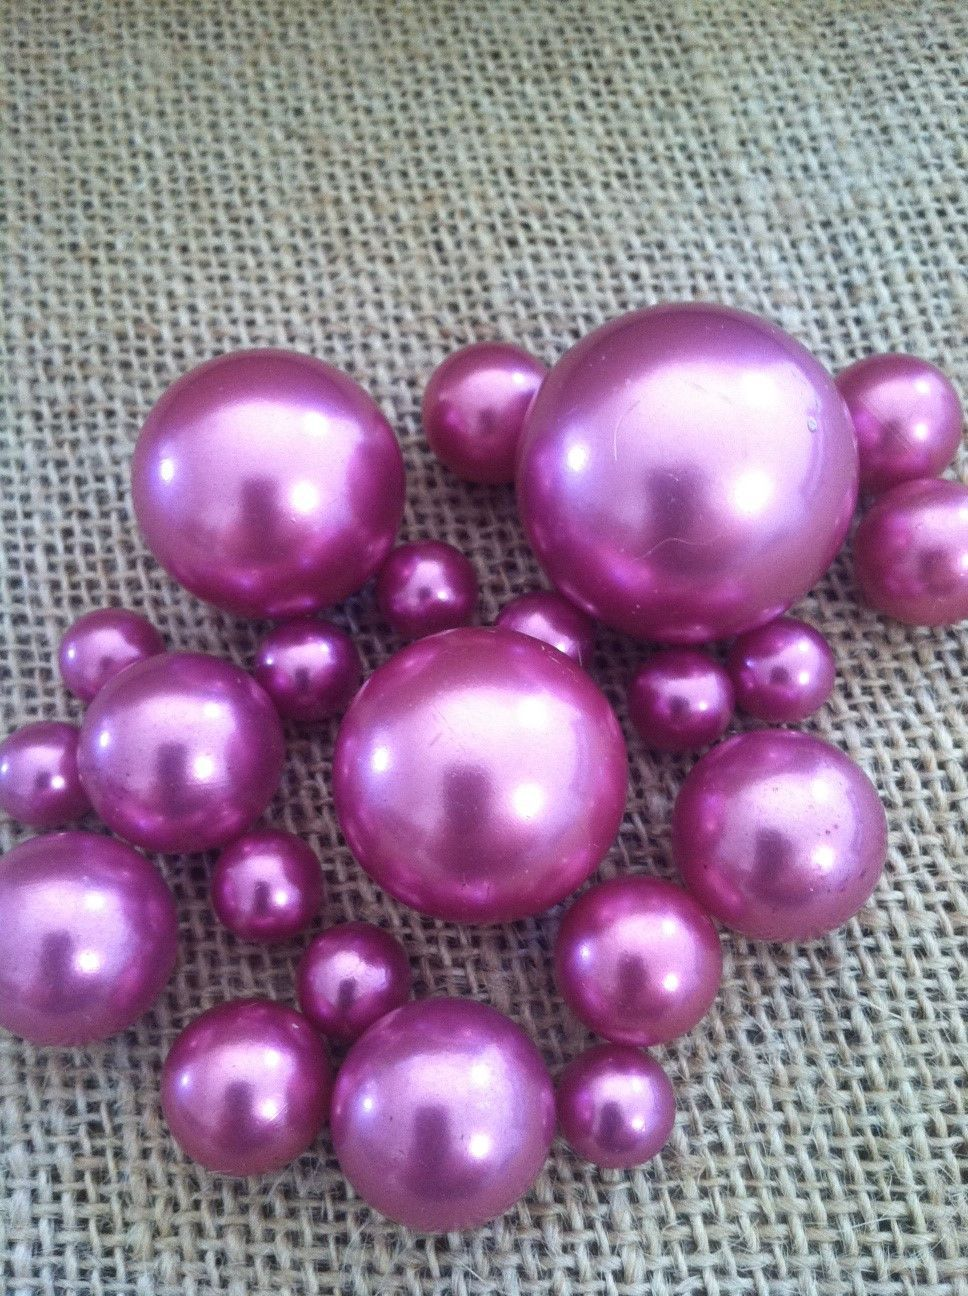 Orchid purple pearls for floating pearl centerpieces jumbo pearl decorative pearls mix size over 30 colors for floating pearl centerpieces vase fillers special events weddings reviewsmspy